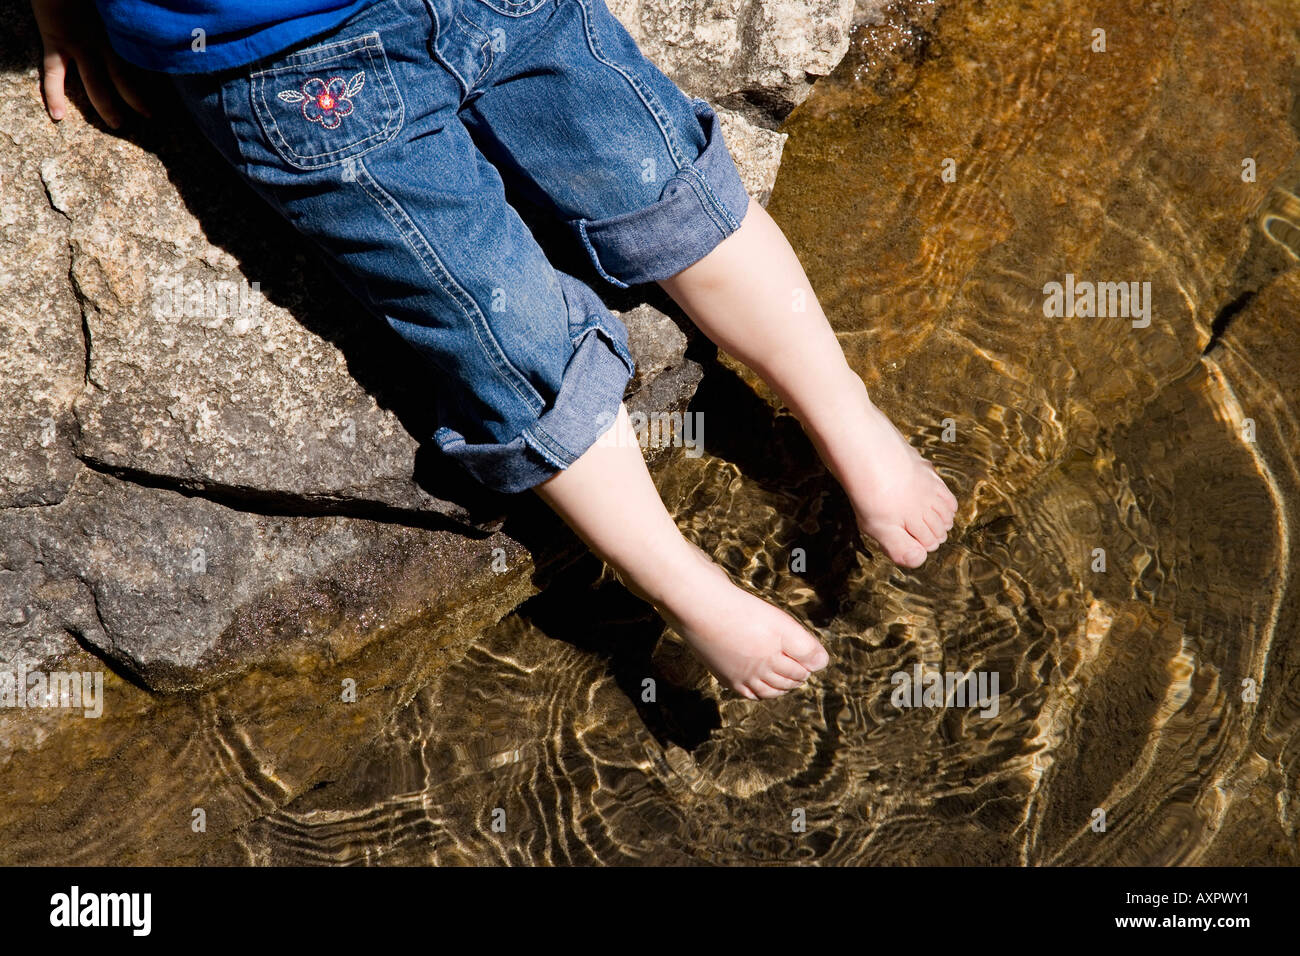 a little girls toes testing the water stock photo: 9656688 - alamy